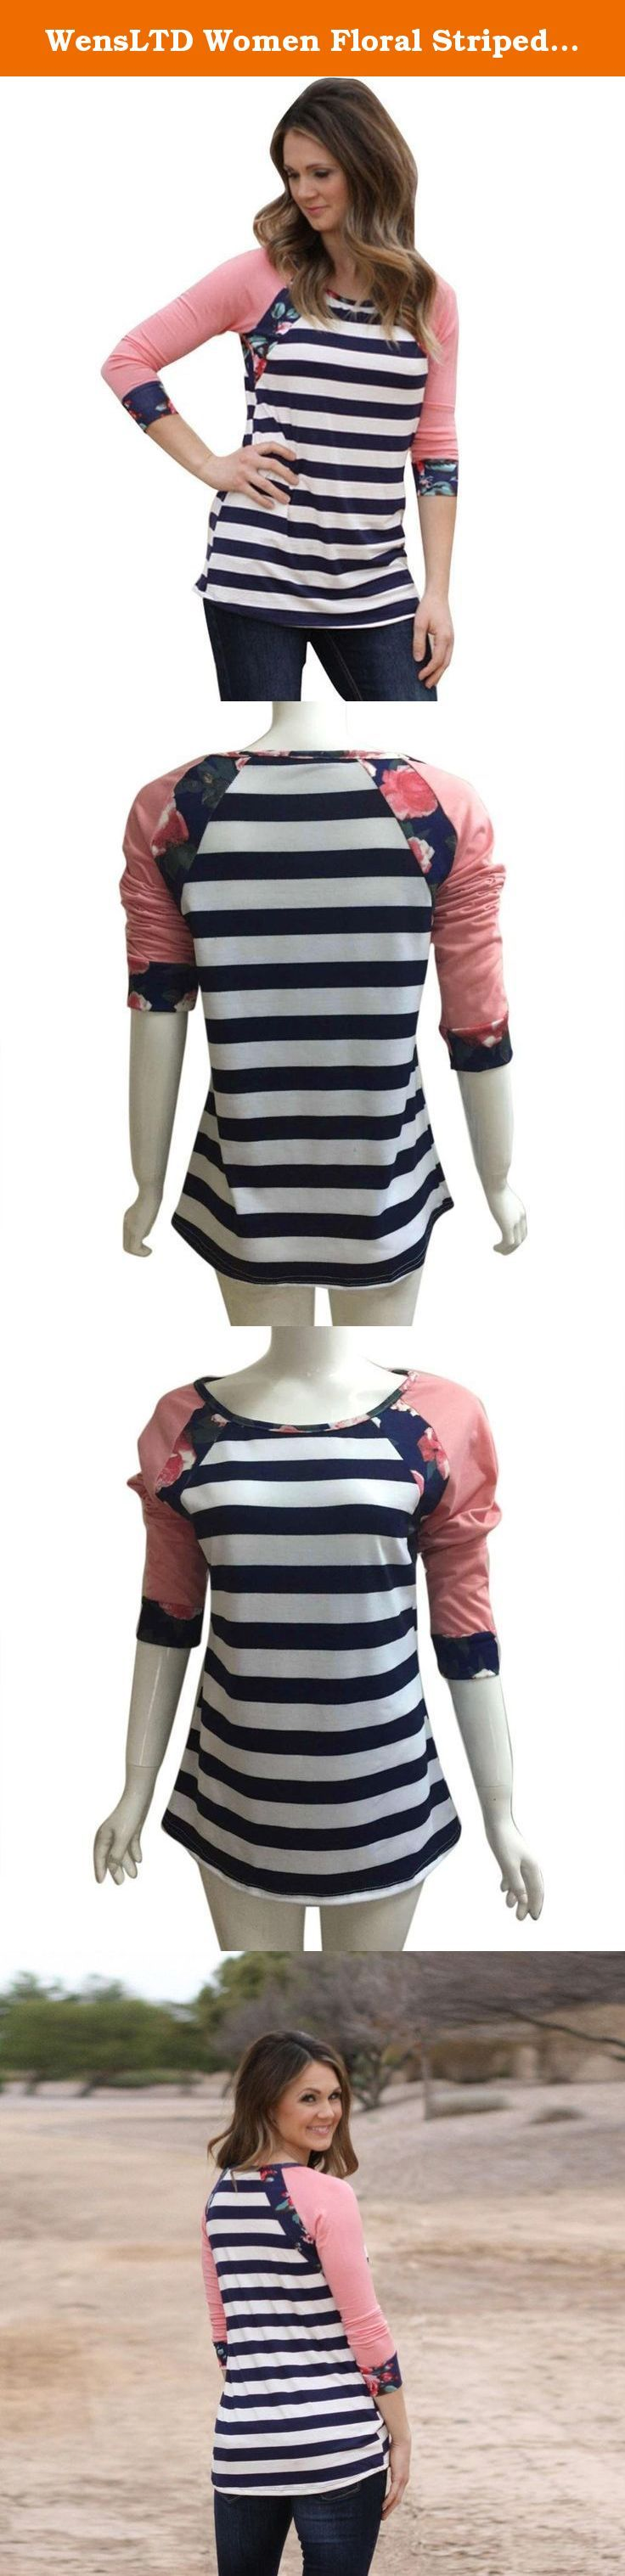 WensLTD Women Floral Striped Printed Casual Blouse Shirt Tops Fashion T-shirt (L, Pink). NOTE: Please compare the detail sizes with yours before you buy!!! Use similar clothing to compare with the size. Specifications: Material:Blending Clothing Length:Normal Collar:O-neck Sleeve Length:Three Quarters Sleeve Decoration:None Pattern Type:Striped Sleeve Style:Normal Style:Fashion Package include:1PC T-Shirt.